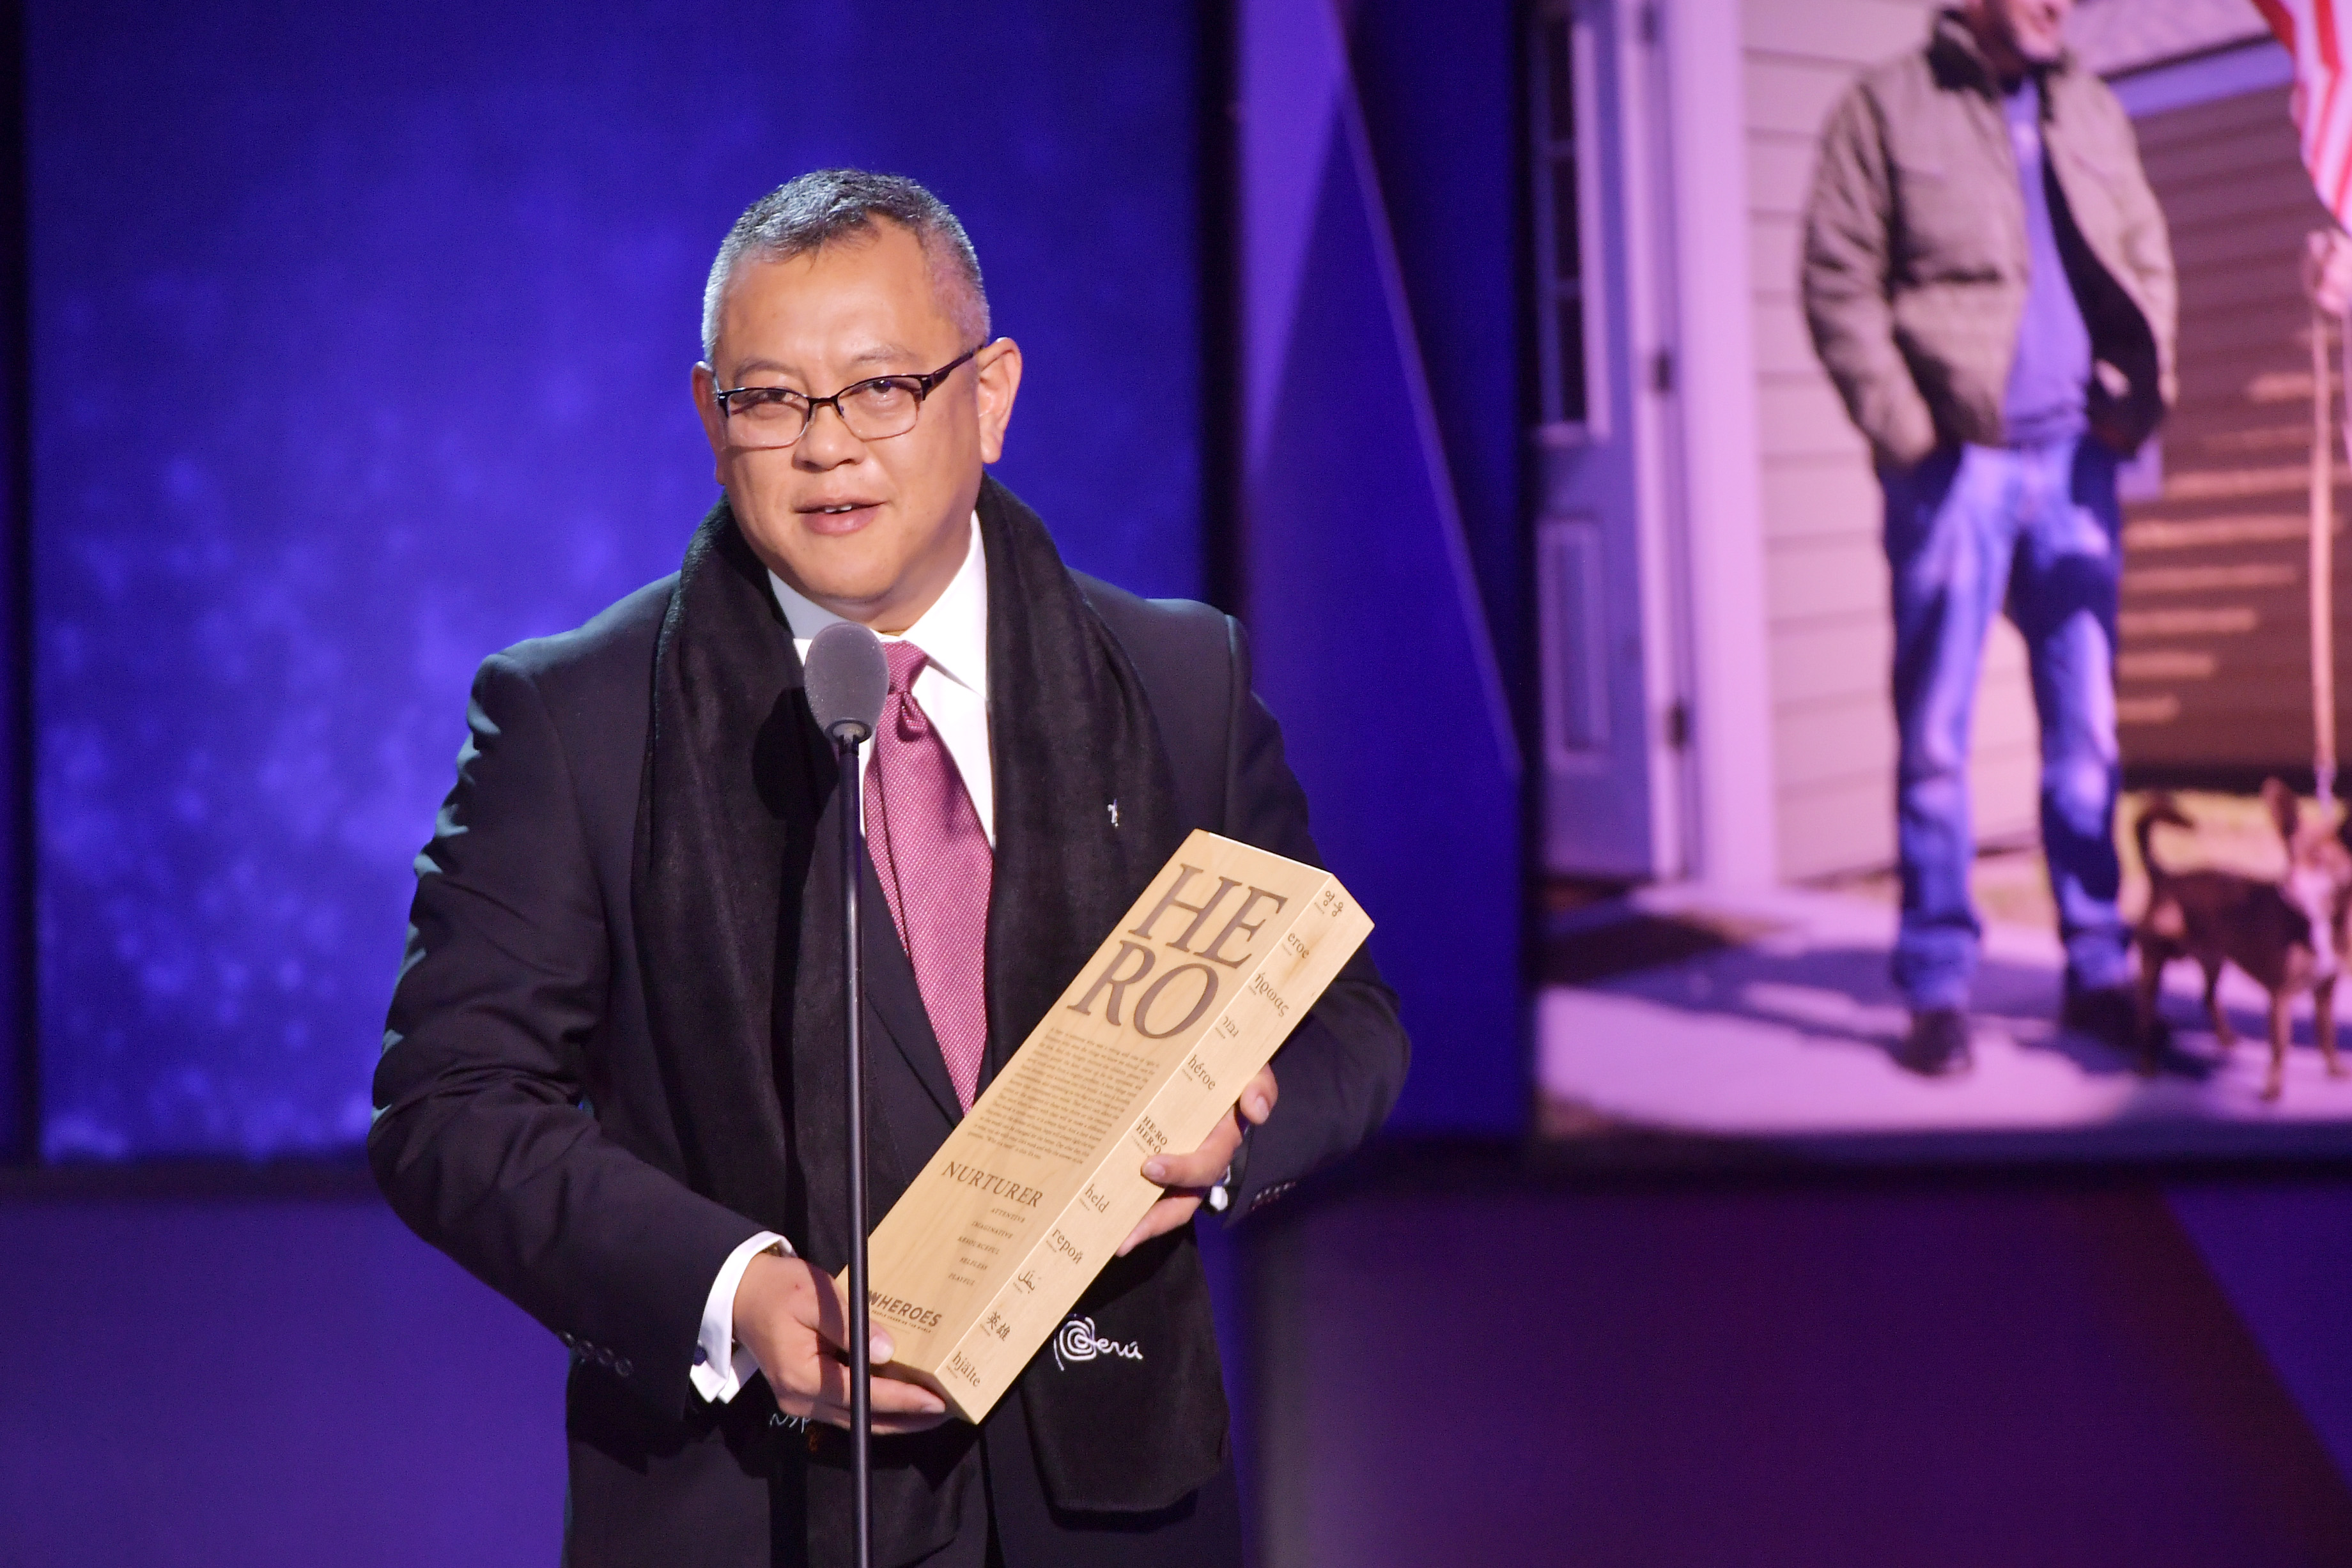 Meet Ricardo Pun-Chong, the Peruvian Doctor Who CNN Named Its Hero of the Year